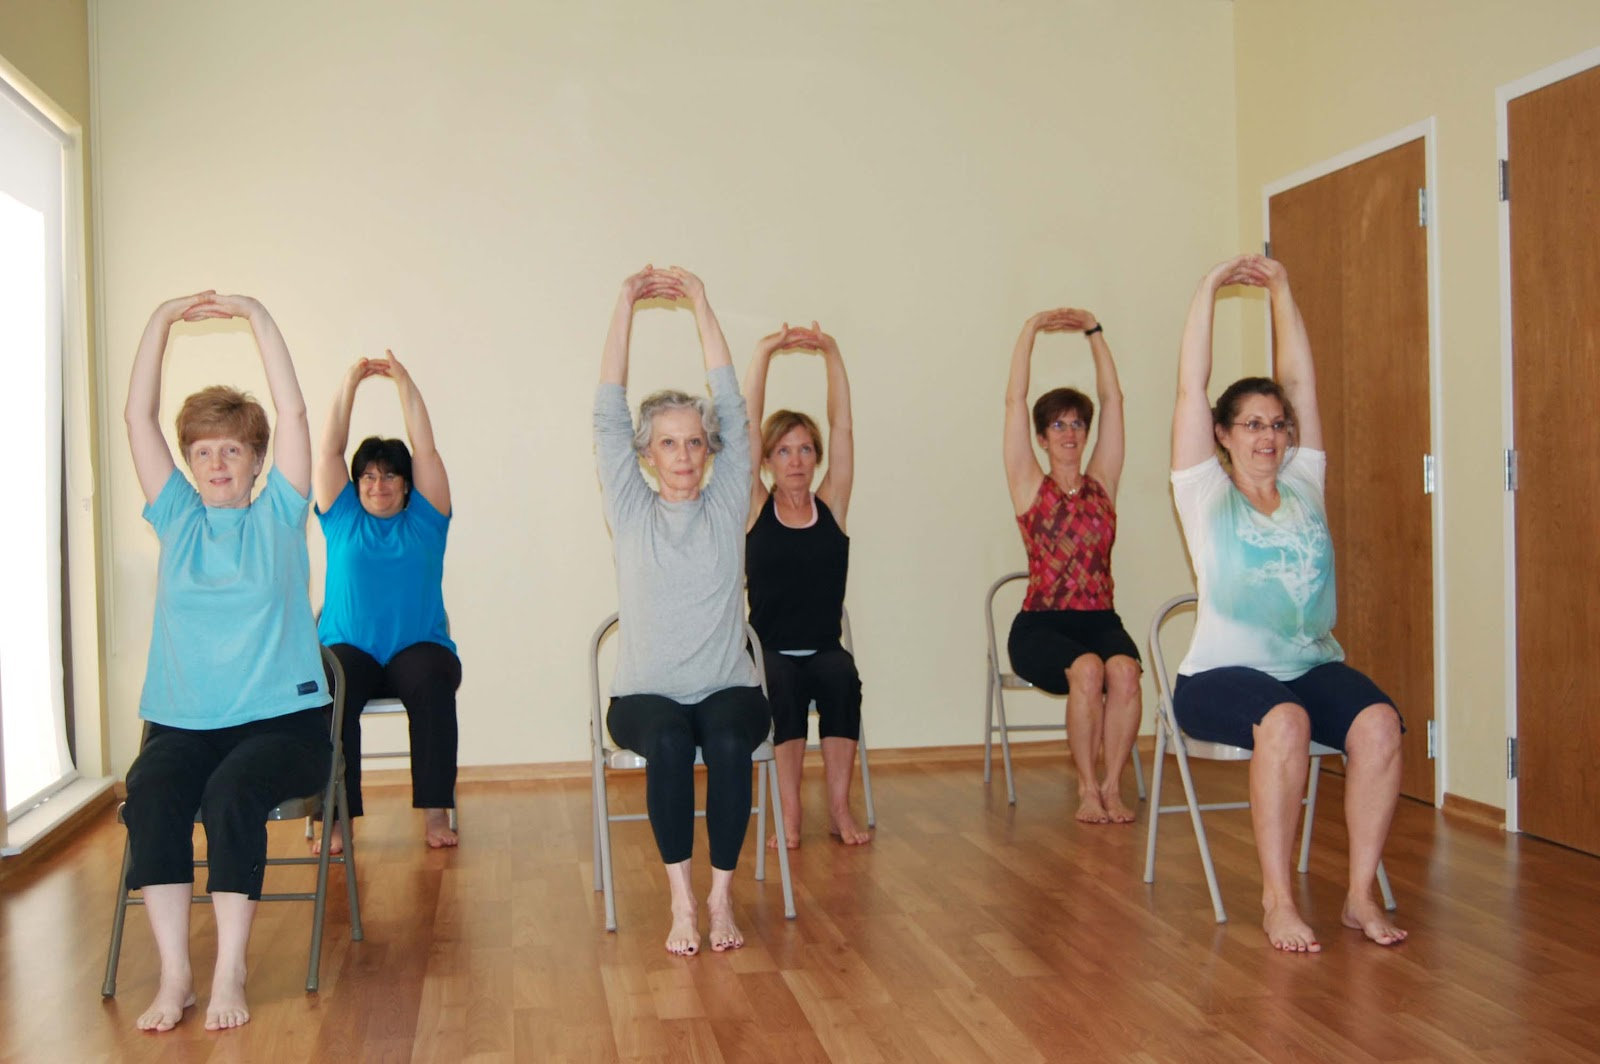 Chair Yoga for over 65's